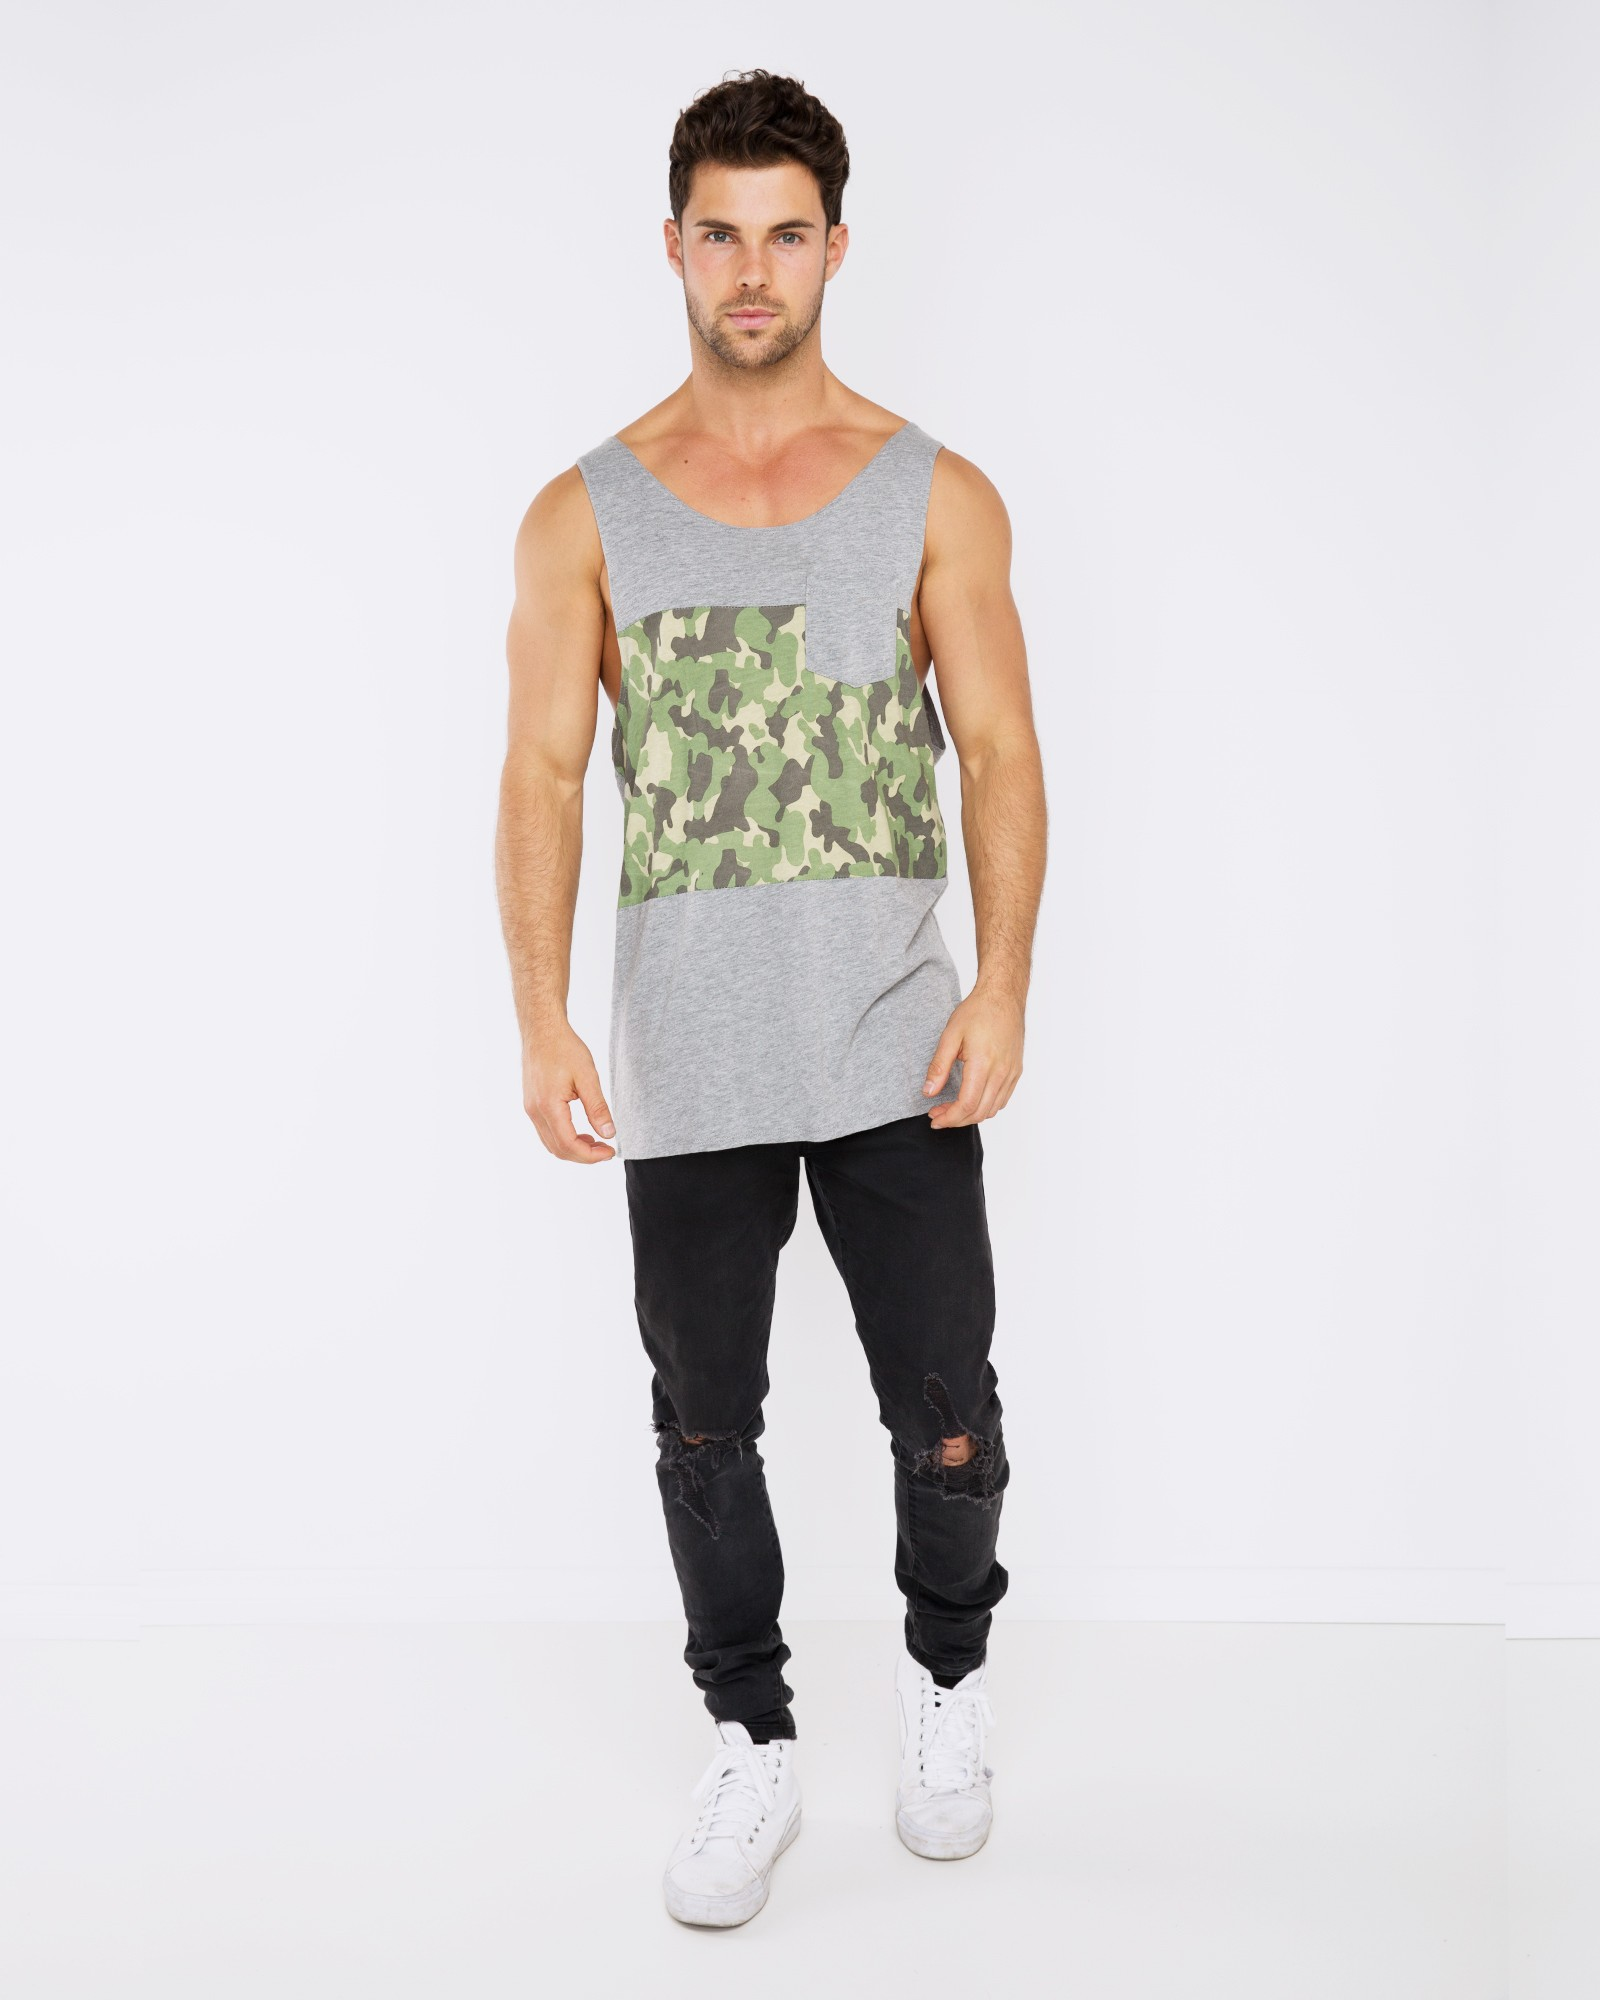 FIND ME IN THE WOODS MARBLE GREY SINGLET